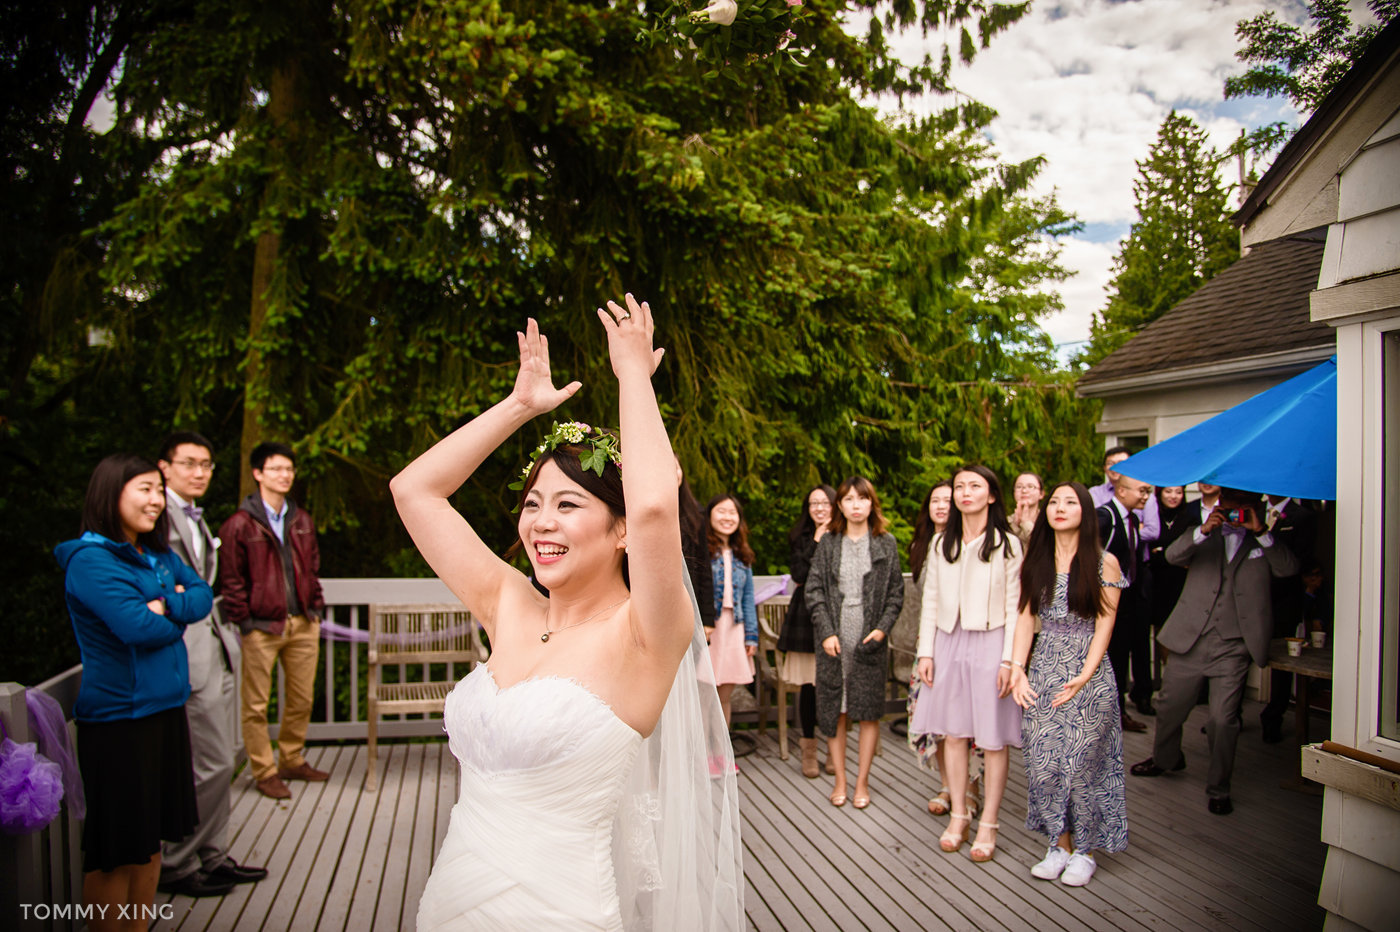 Seattle Wedding and pre wedding Los Angeles Tommy Xing Photography 西雅图洛杉矶旧金山婚礼婚纱照摄影师 133.jpg